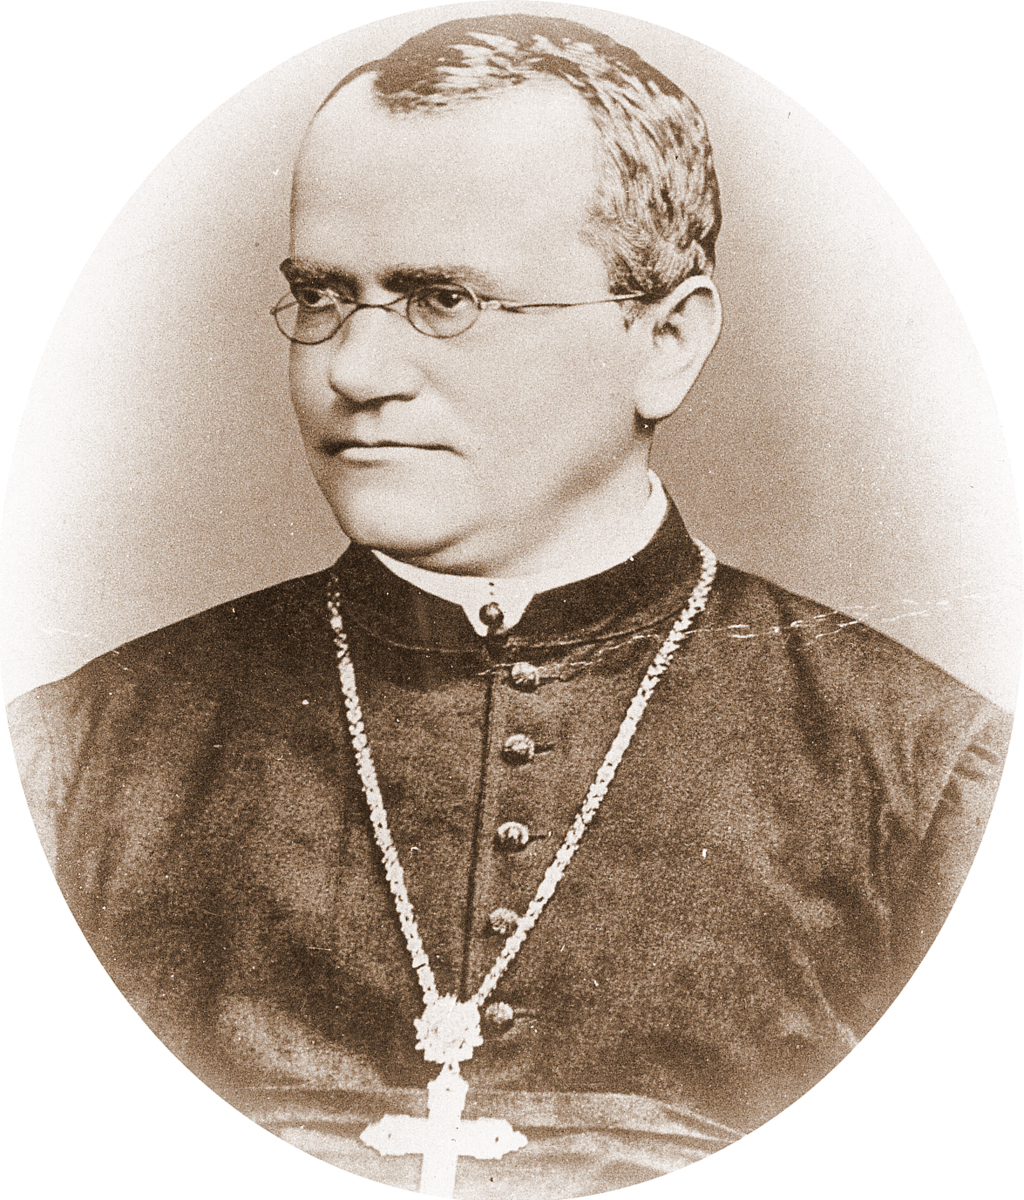 gregor mendel austrian monk Gregor mendel was an austrian monk who discovered the principles of heredity through experiments in his garden mendel's observations became the reason of modern genetics and the study of heredity he is widely considered the father of modern genetics.